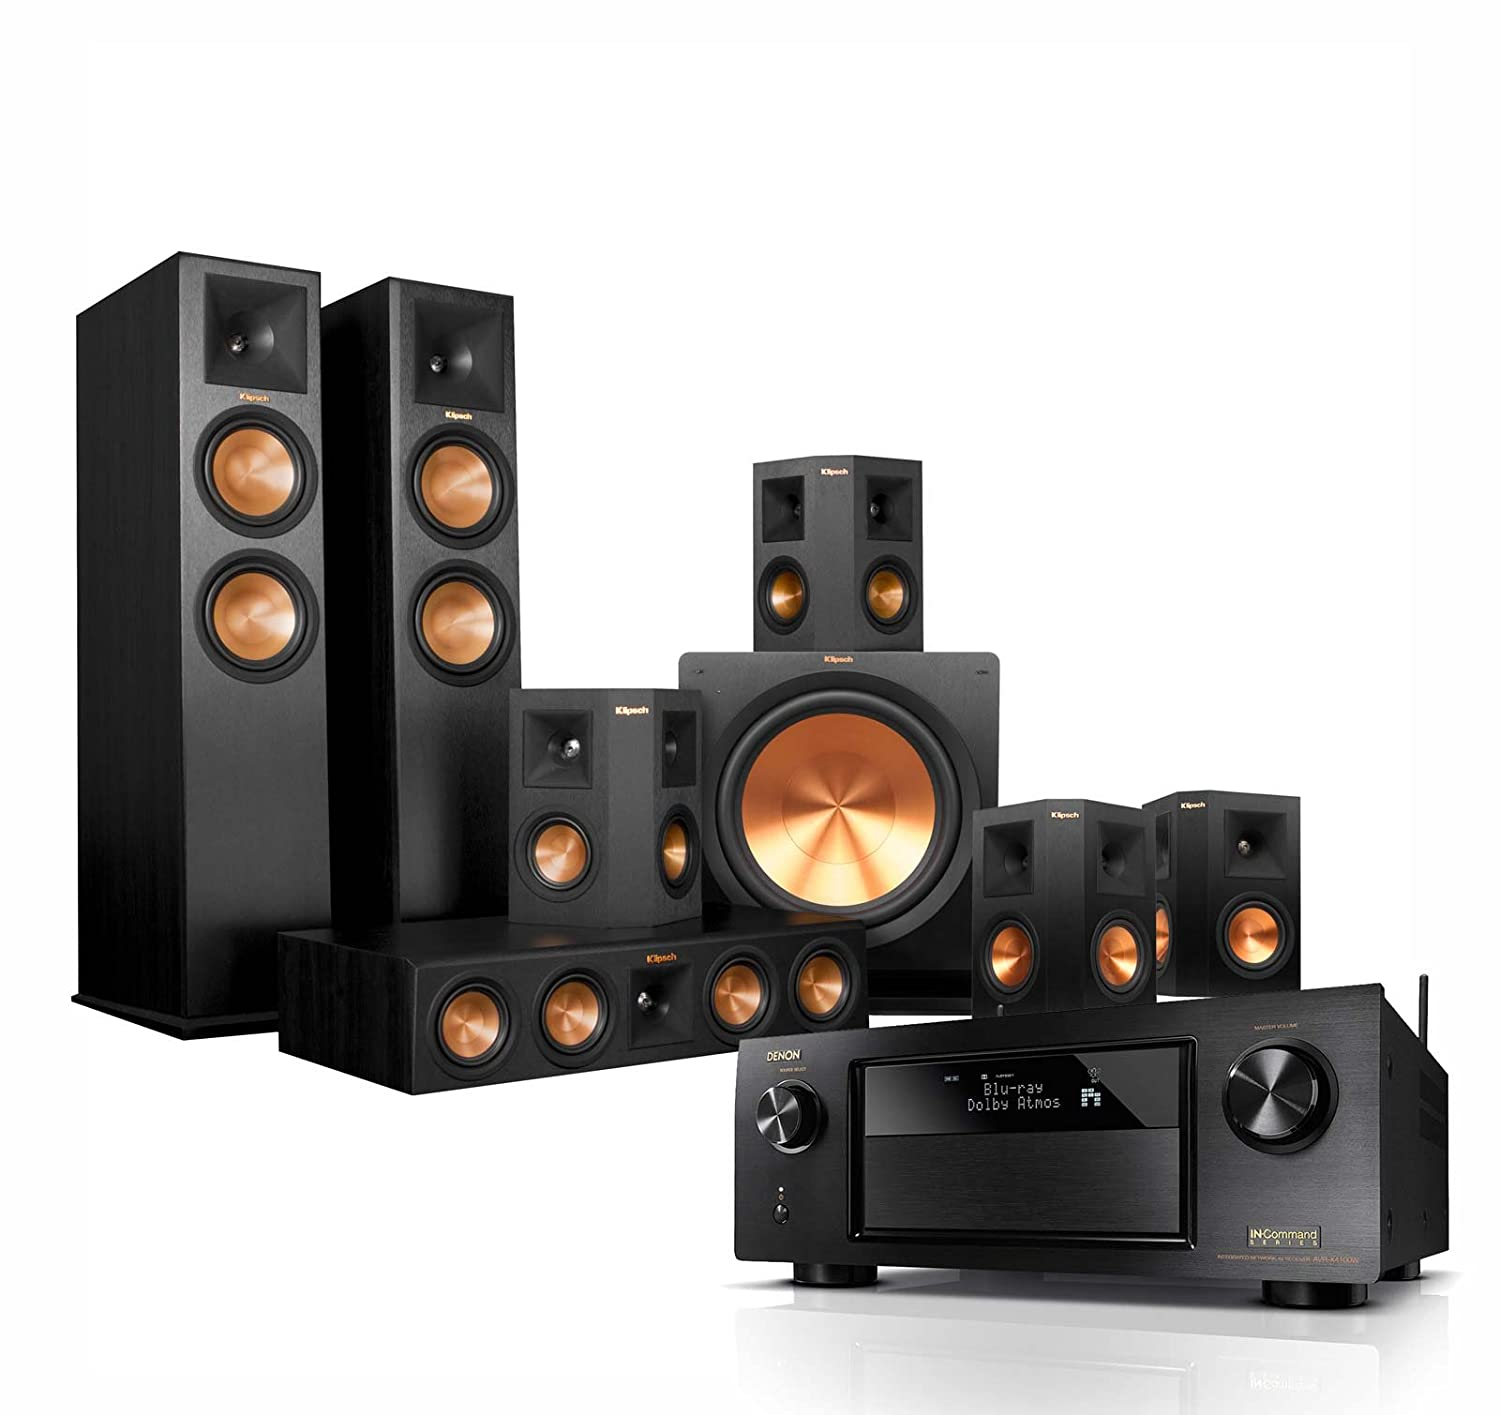 The Best 7.1 Home Theater System 1